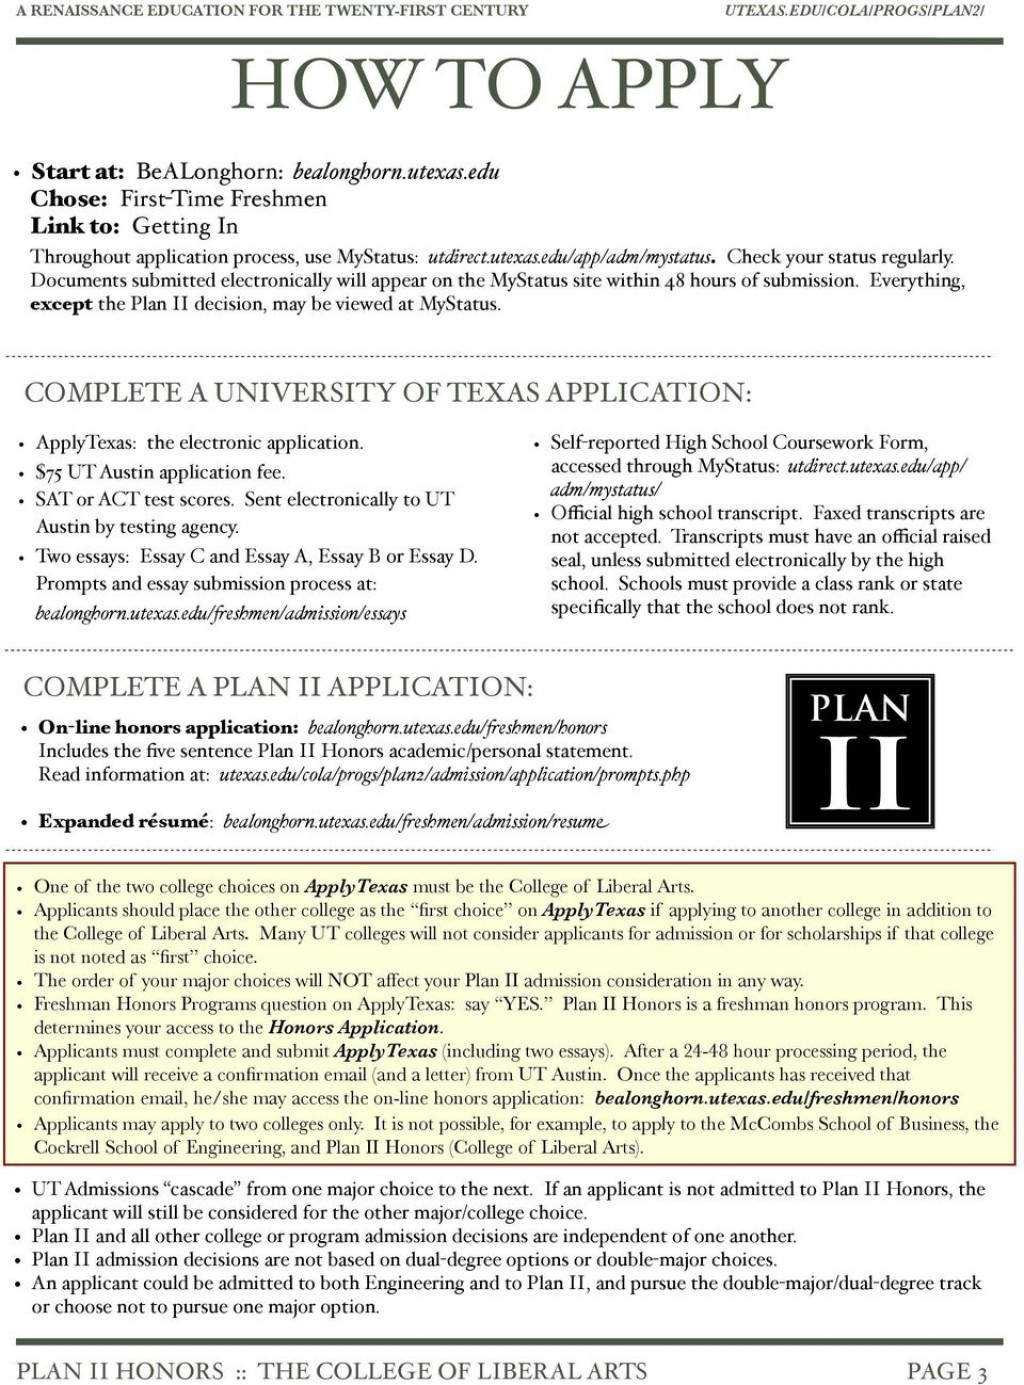 005 Essay Example Fsu Application College Texas Admission P Examples Florida State Remarkable Sample Large